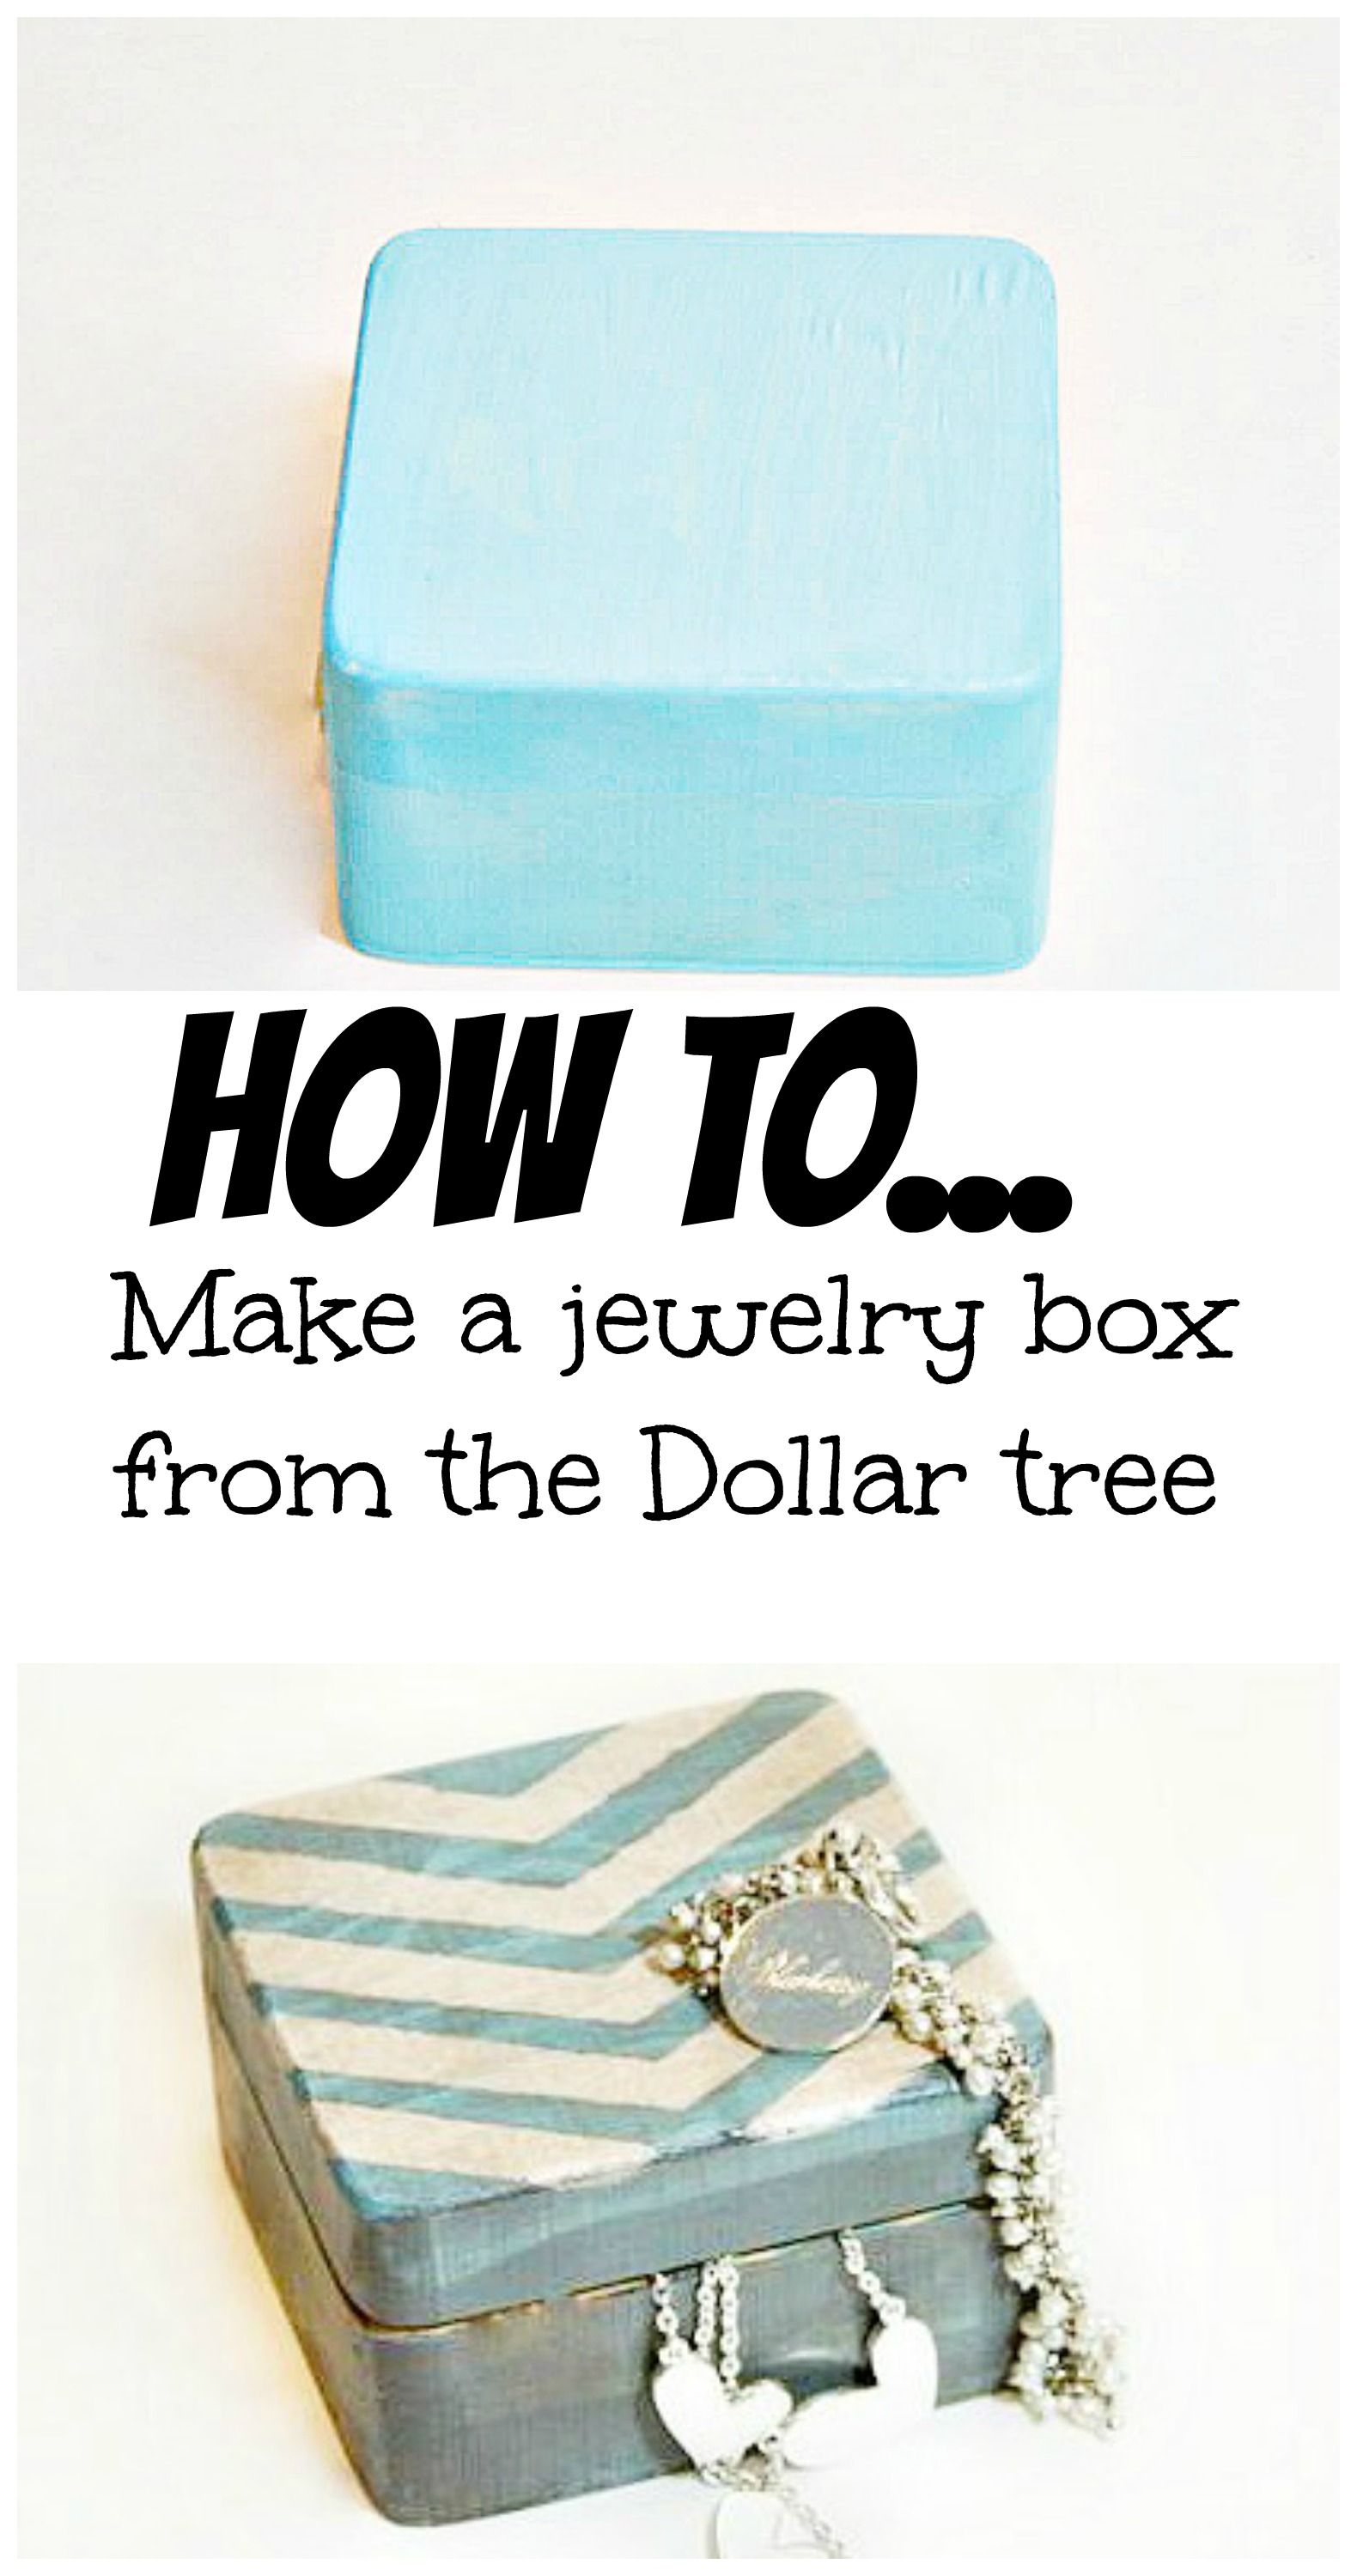 How to make a jewelry box from the dollar tree